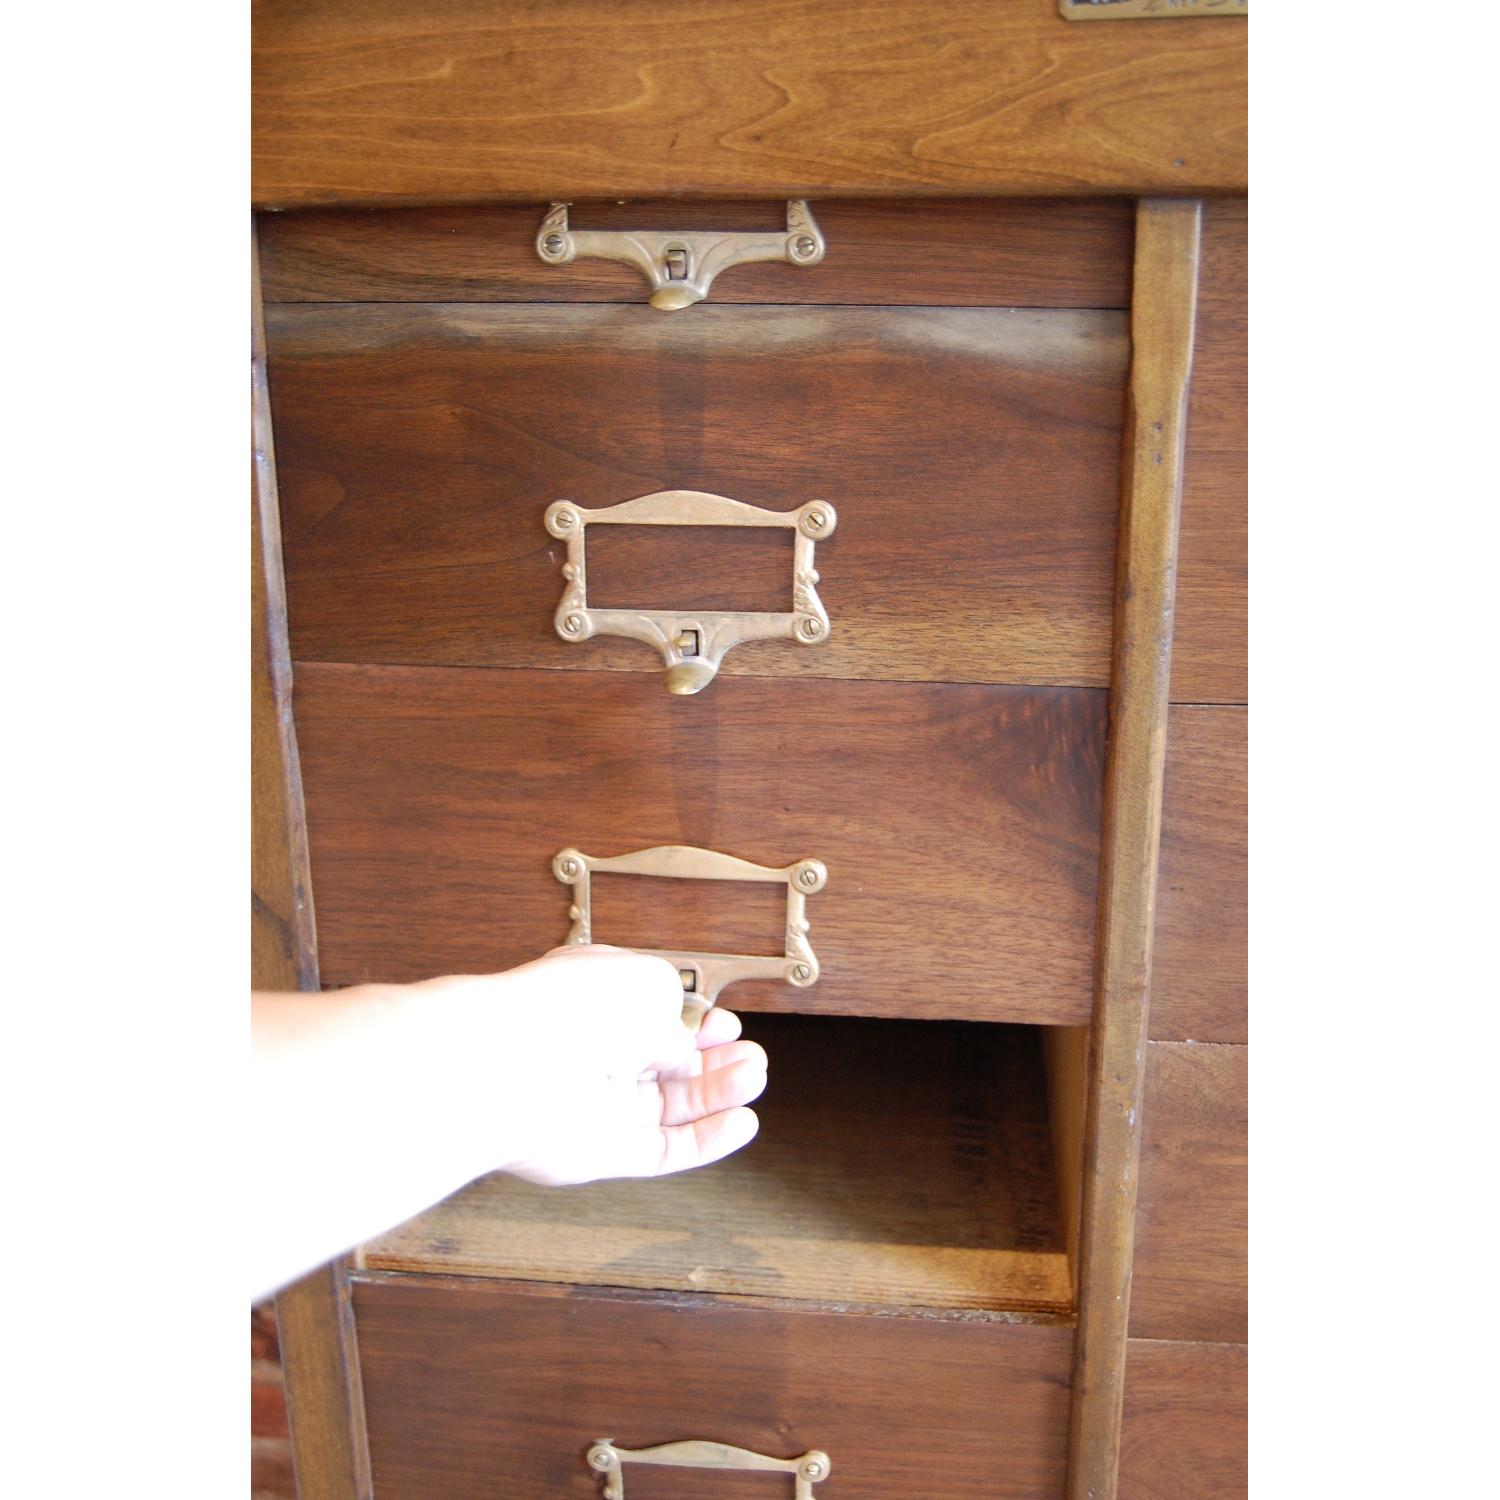 F. Wesel Manufacturing Company Tall File Cabinet - image-5